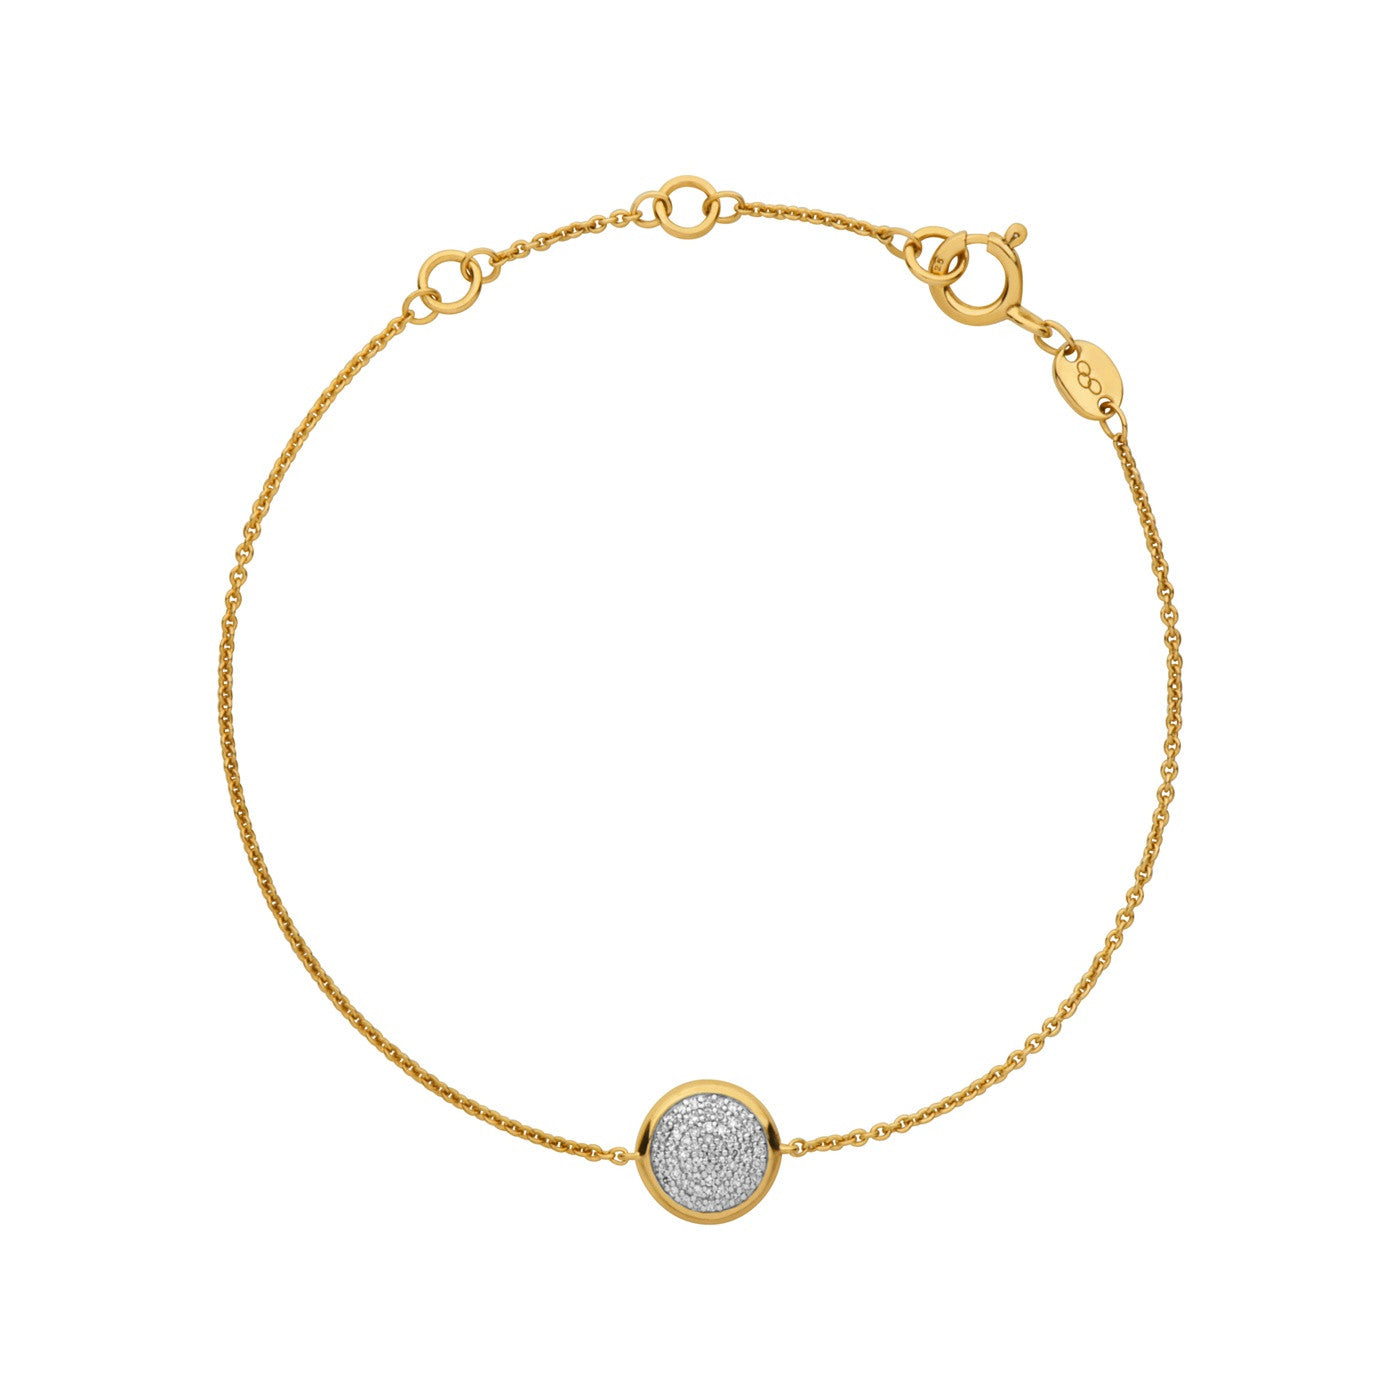 Links of London Diamond Essentials Pave Round Bracelet Yellow Gold Vermeil - 5010.2844